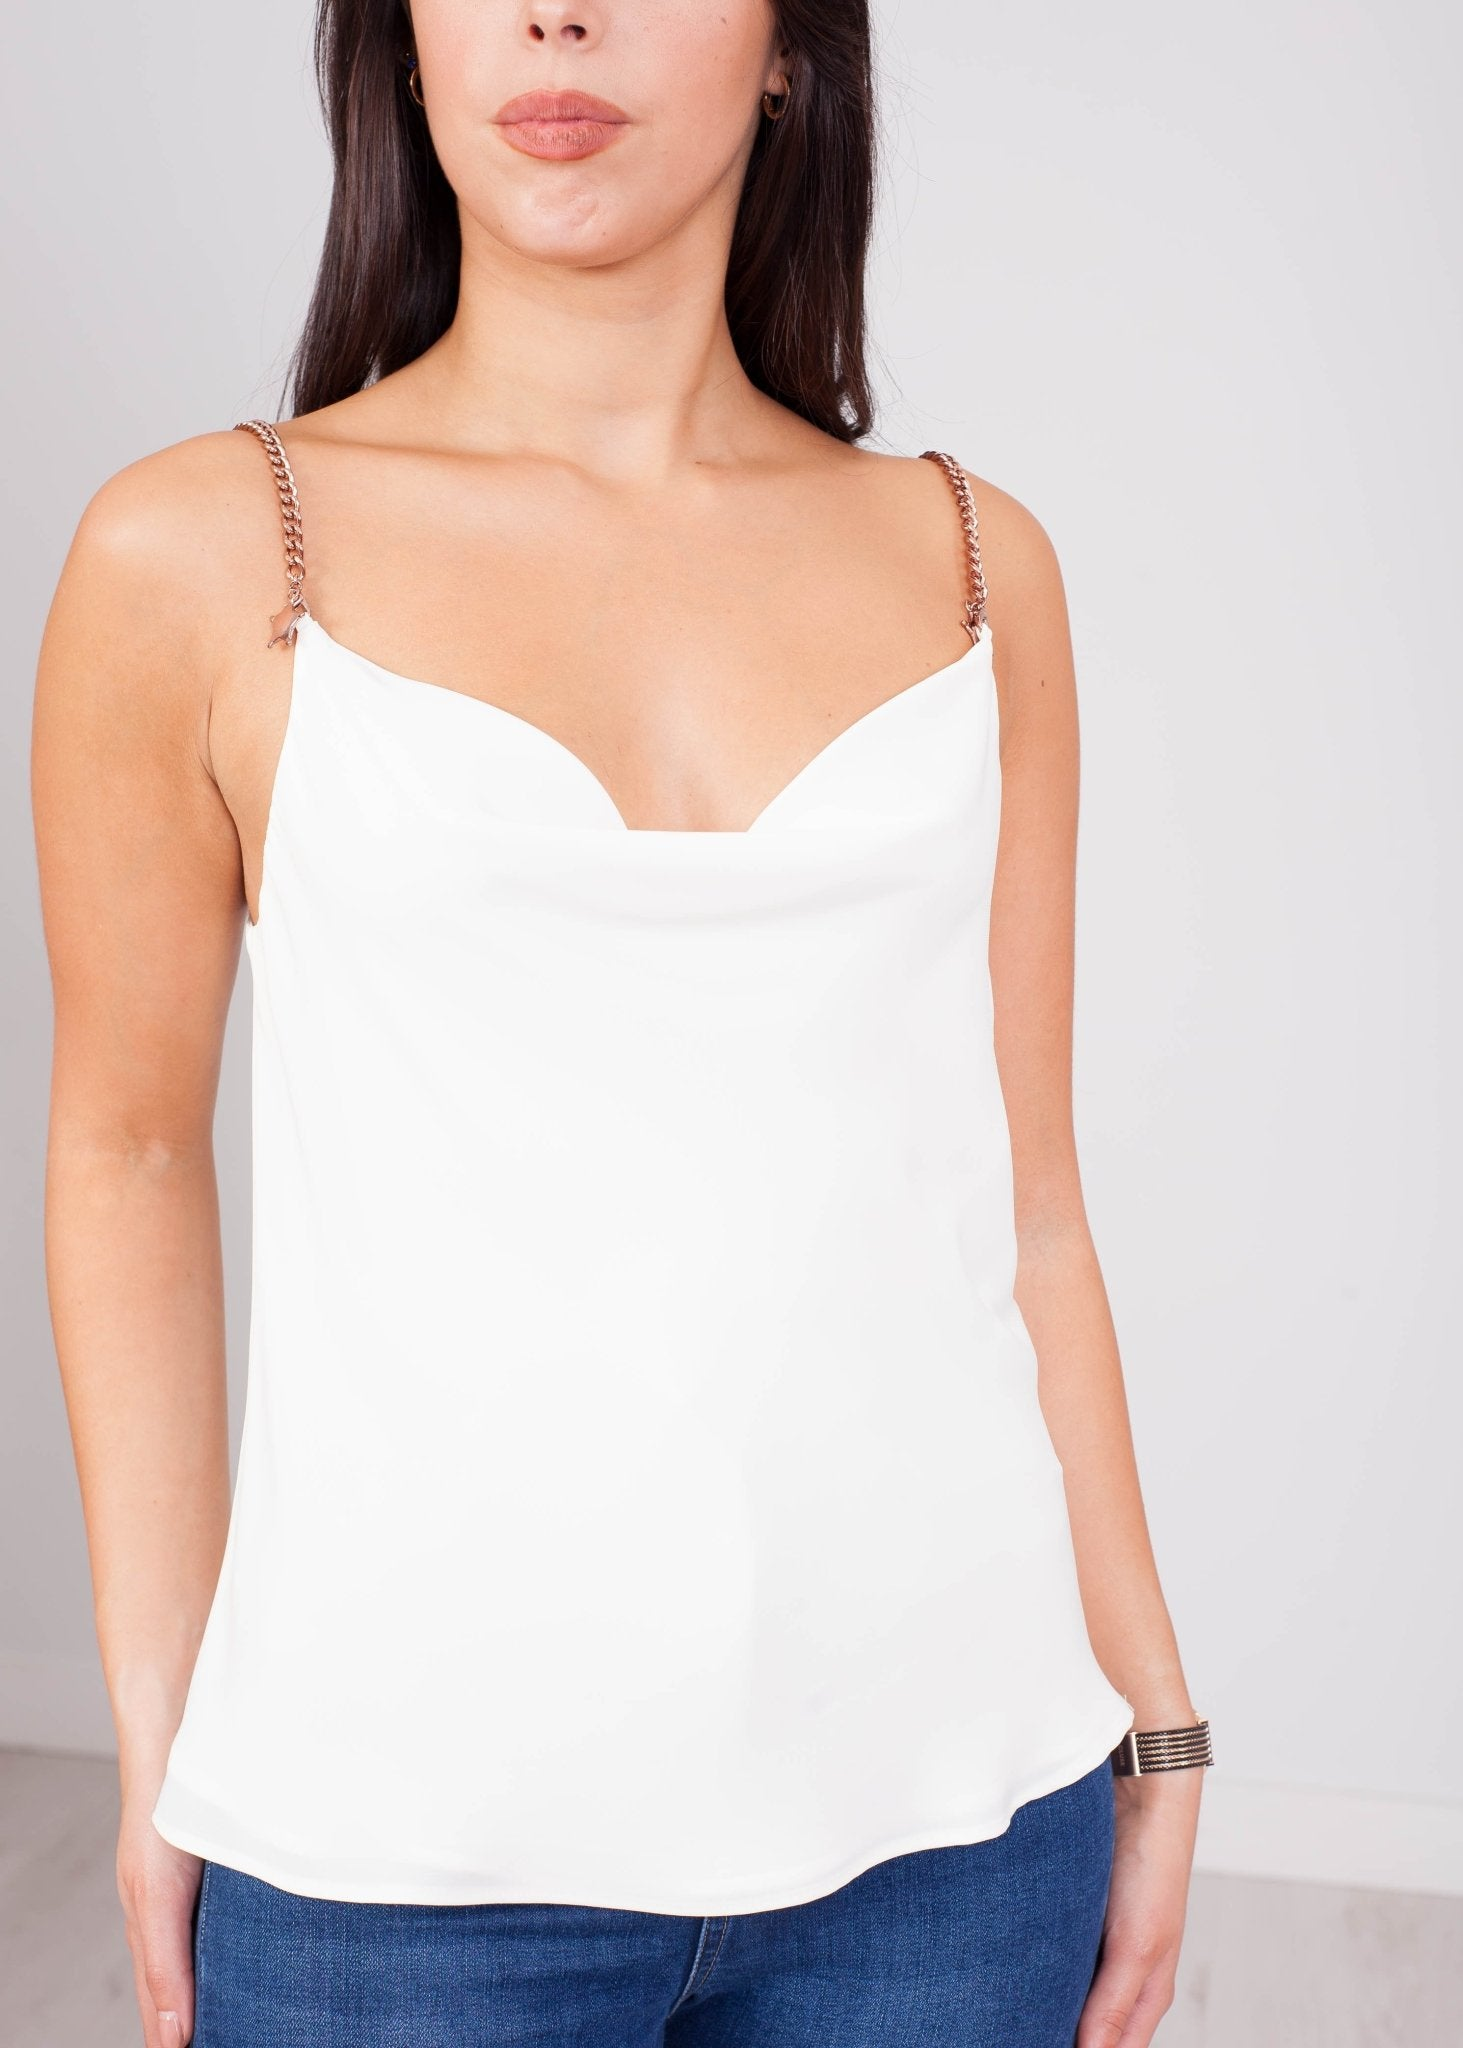 Eva Chain Cami in Cream - The Walk in Wardrobe